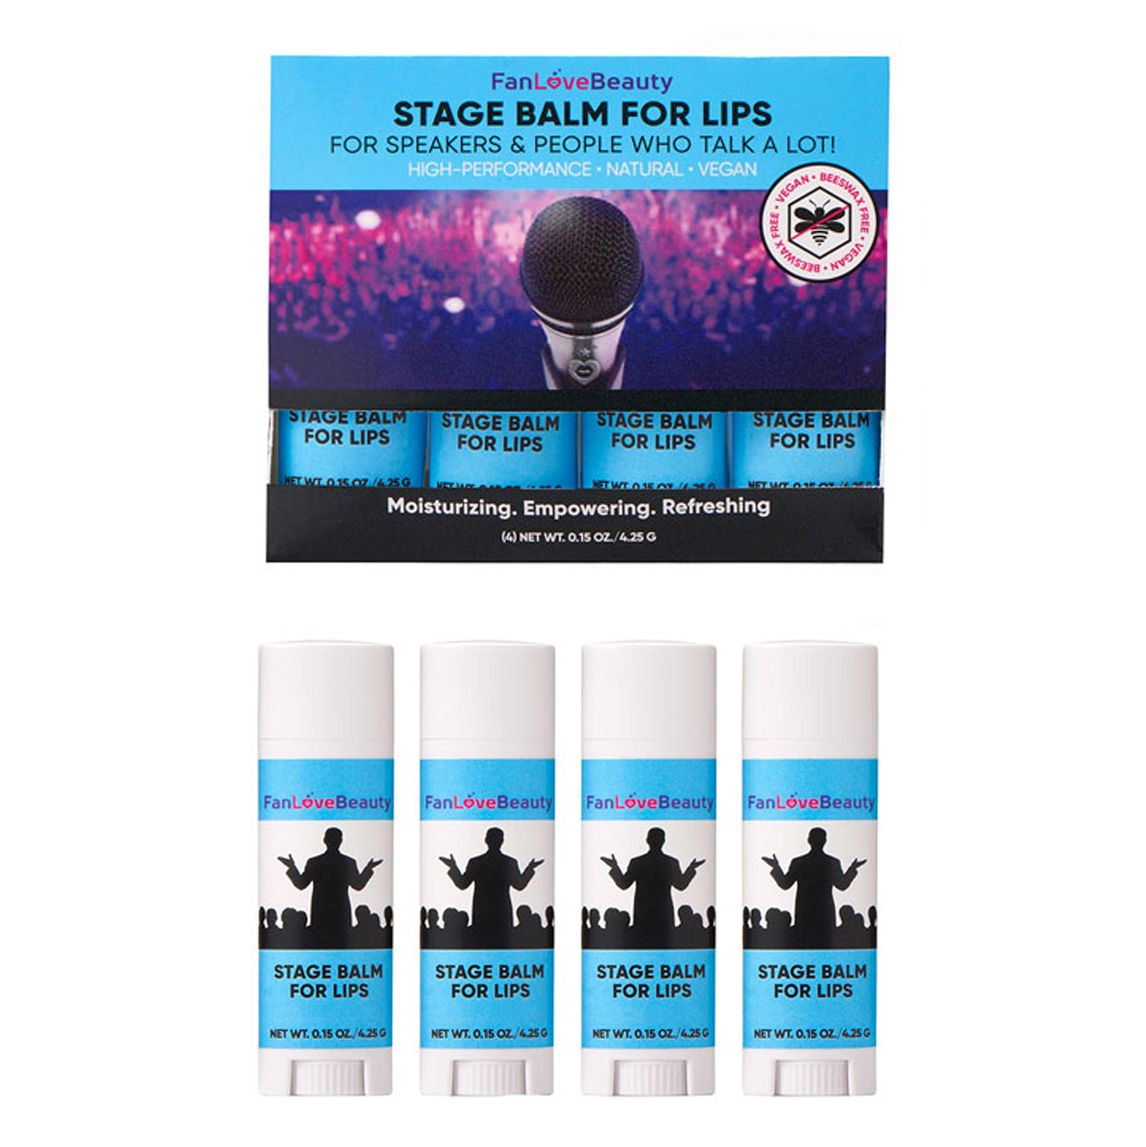 Limited Edition: 4 Pack Untinted Stage Balm for Lips - FanLoveBeauty Empowers Confidence Through Beauty